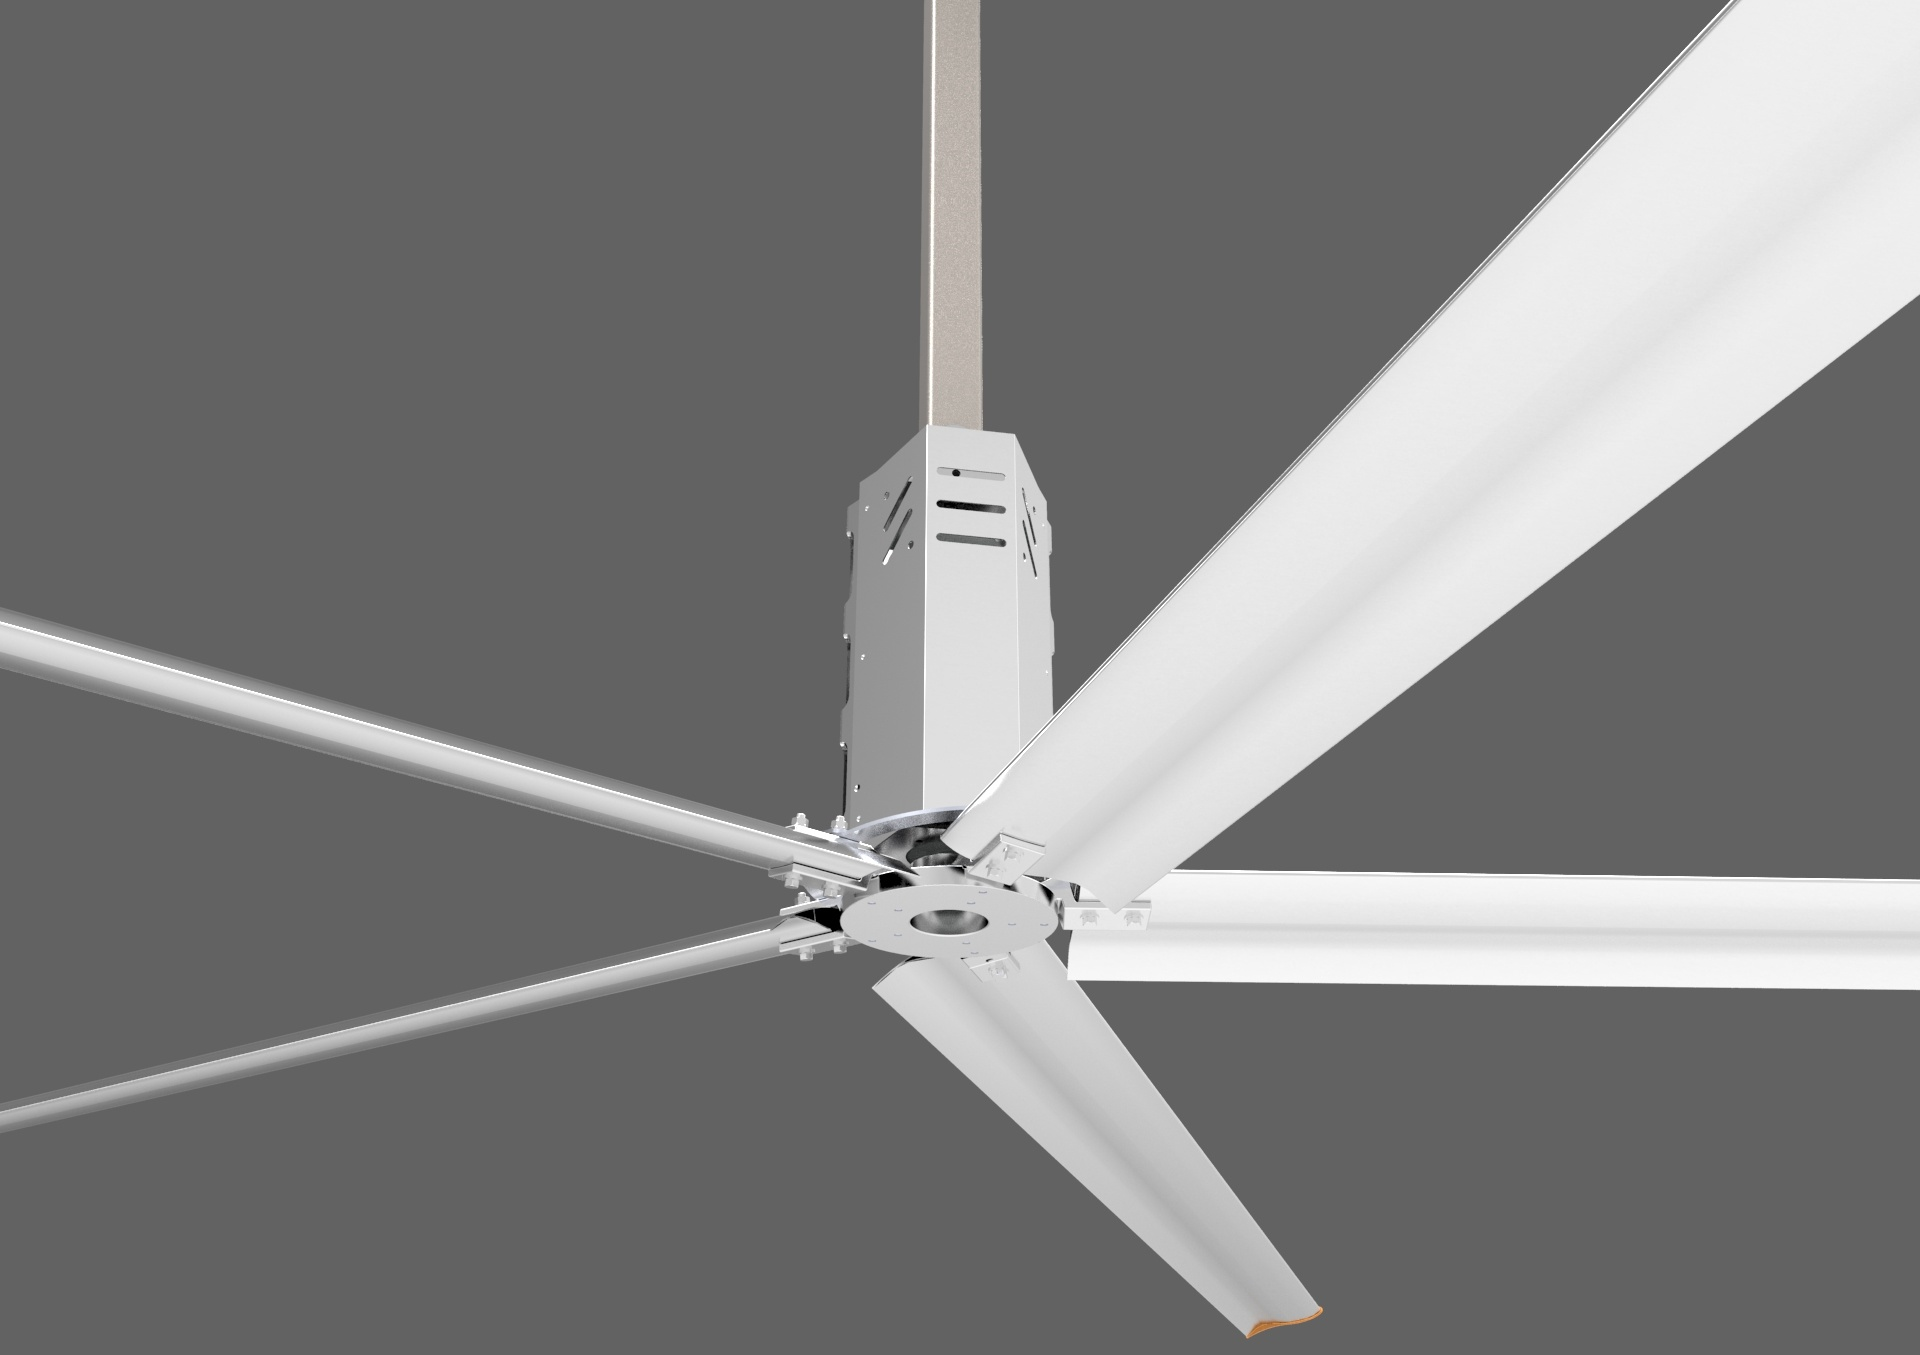 6.2m (20.4FT) Diameter Fan Blades Large Gig Ceiling Fan